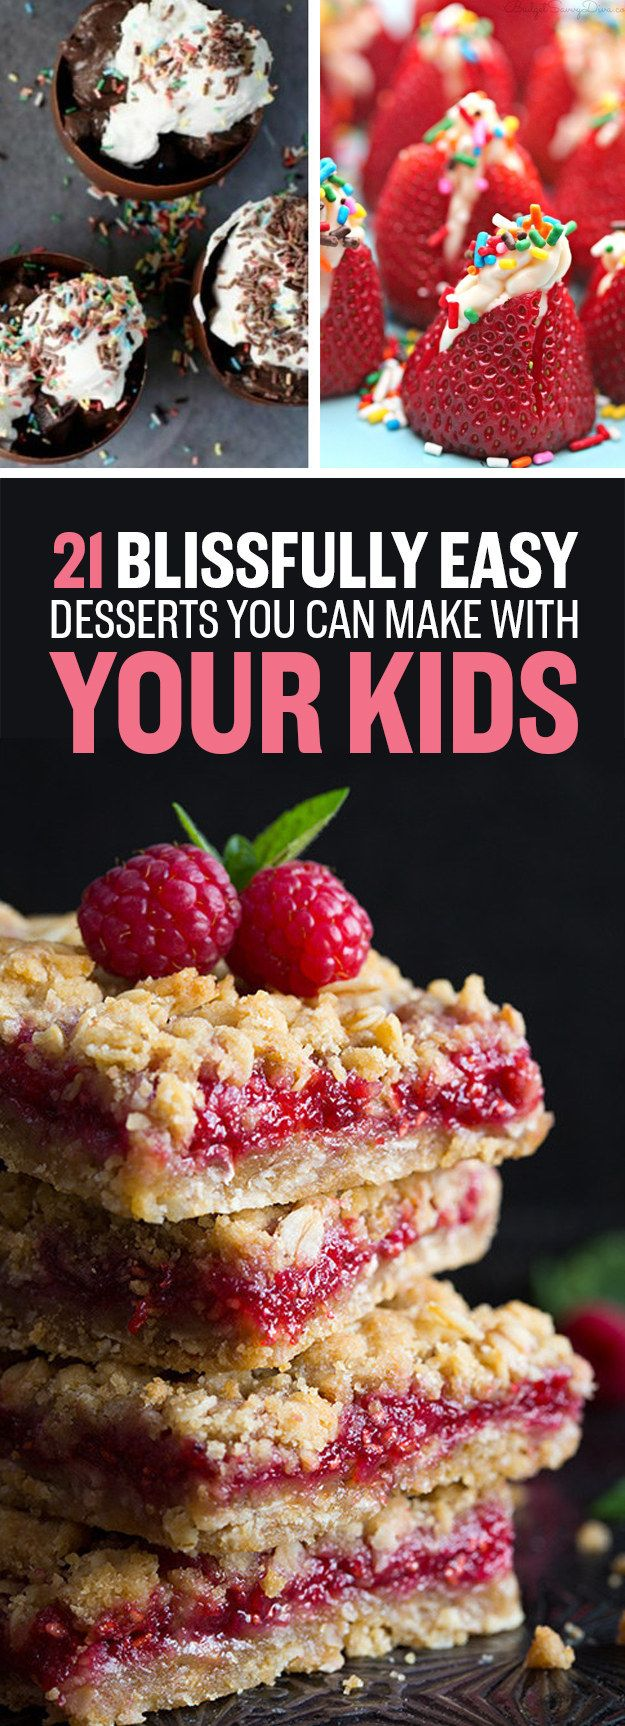 21 Blissfully Easy Desserts You Can Make With Your Kids